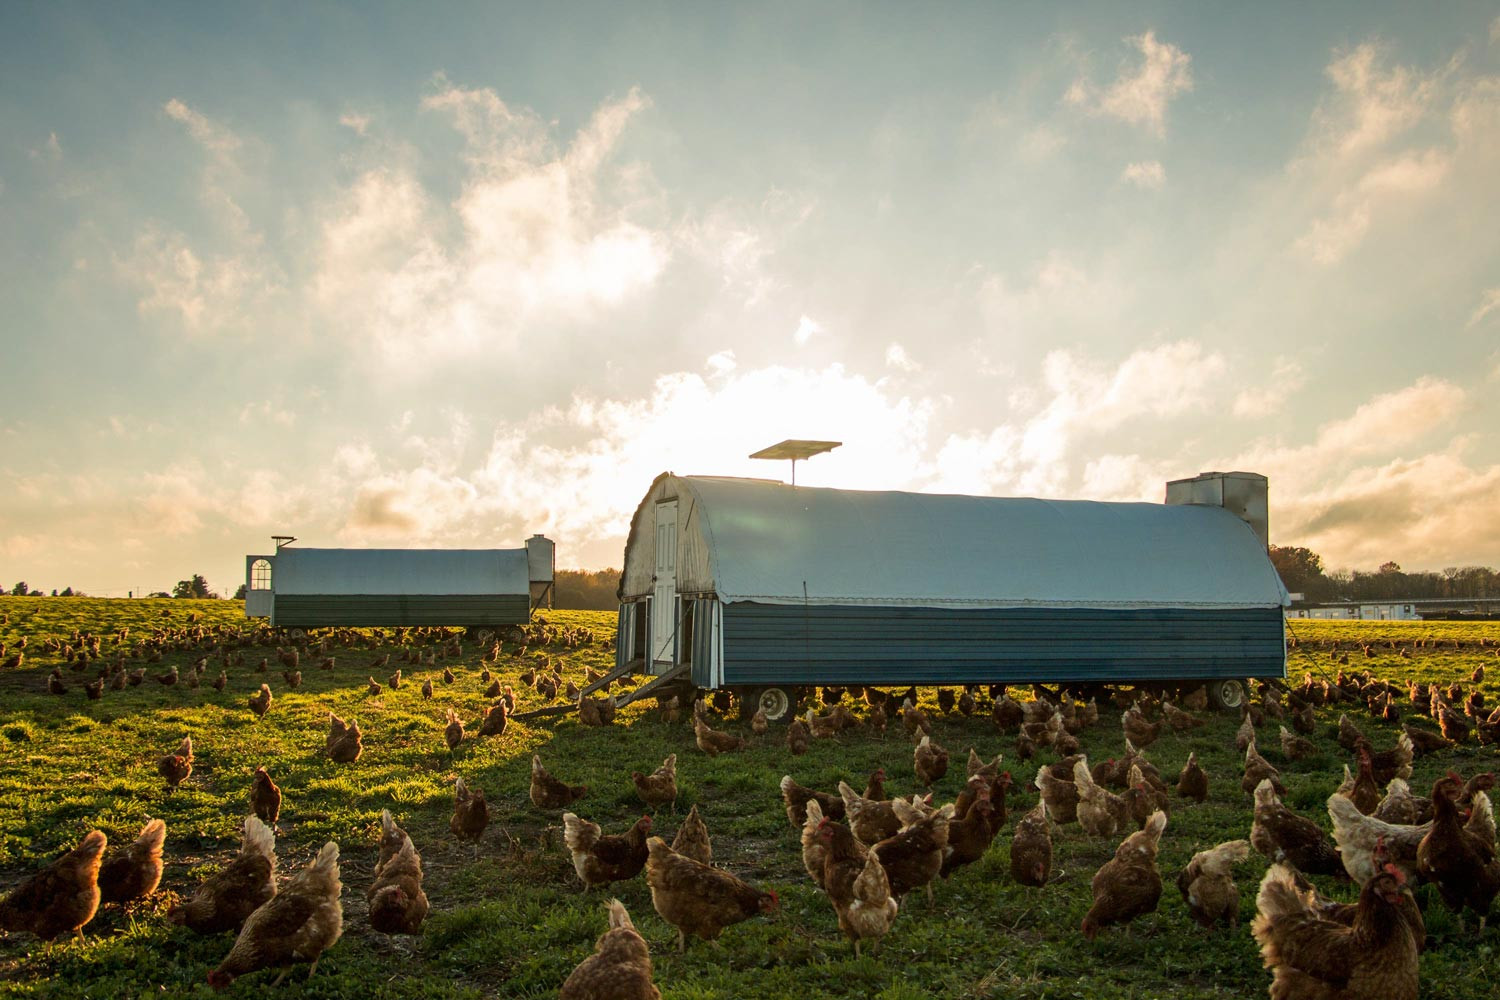 Soy-free, GMO-free, pastured hens